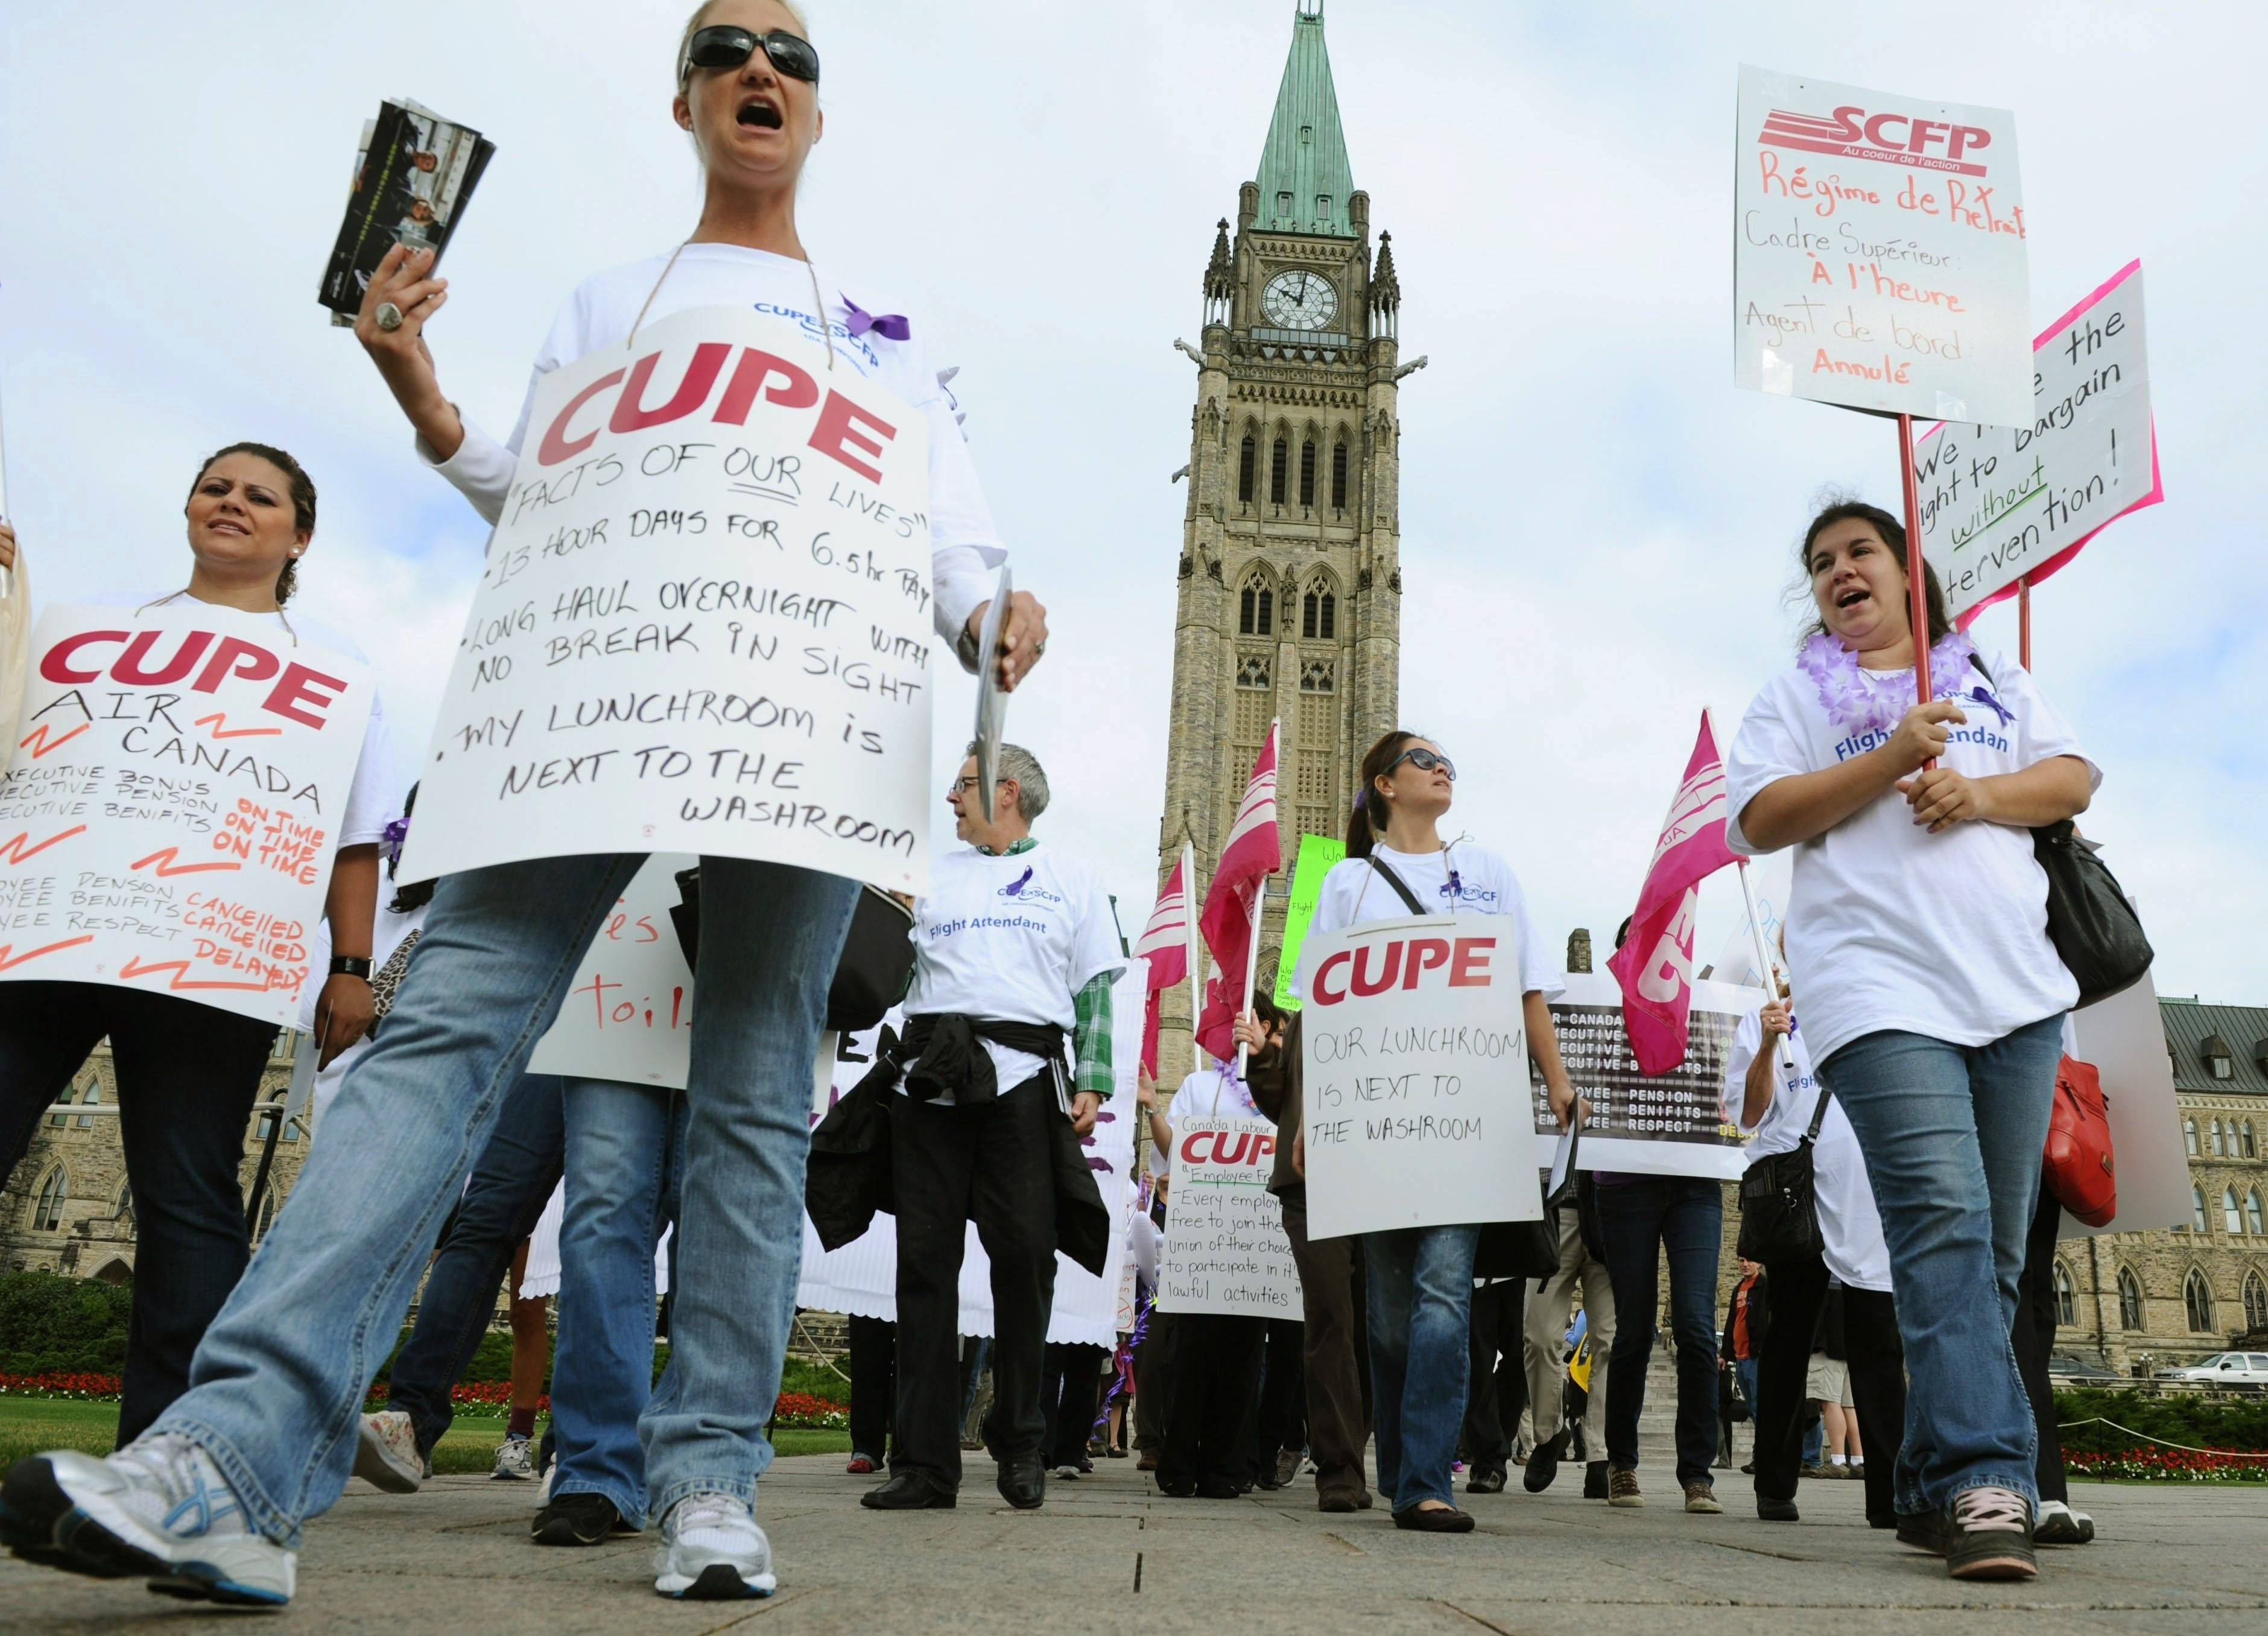 Air Canada employees rally Tuesday on Parliament Hill in Ottawa. Talks between Air Canada and its flight attendants broke off late Monday without an agreement, but an airline spokesman says negotiations will resume, in hopes of avoiding a strike, just after midnight tonight.